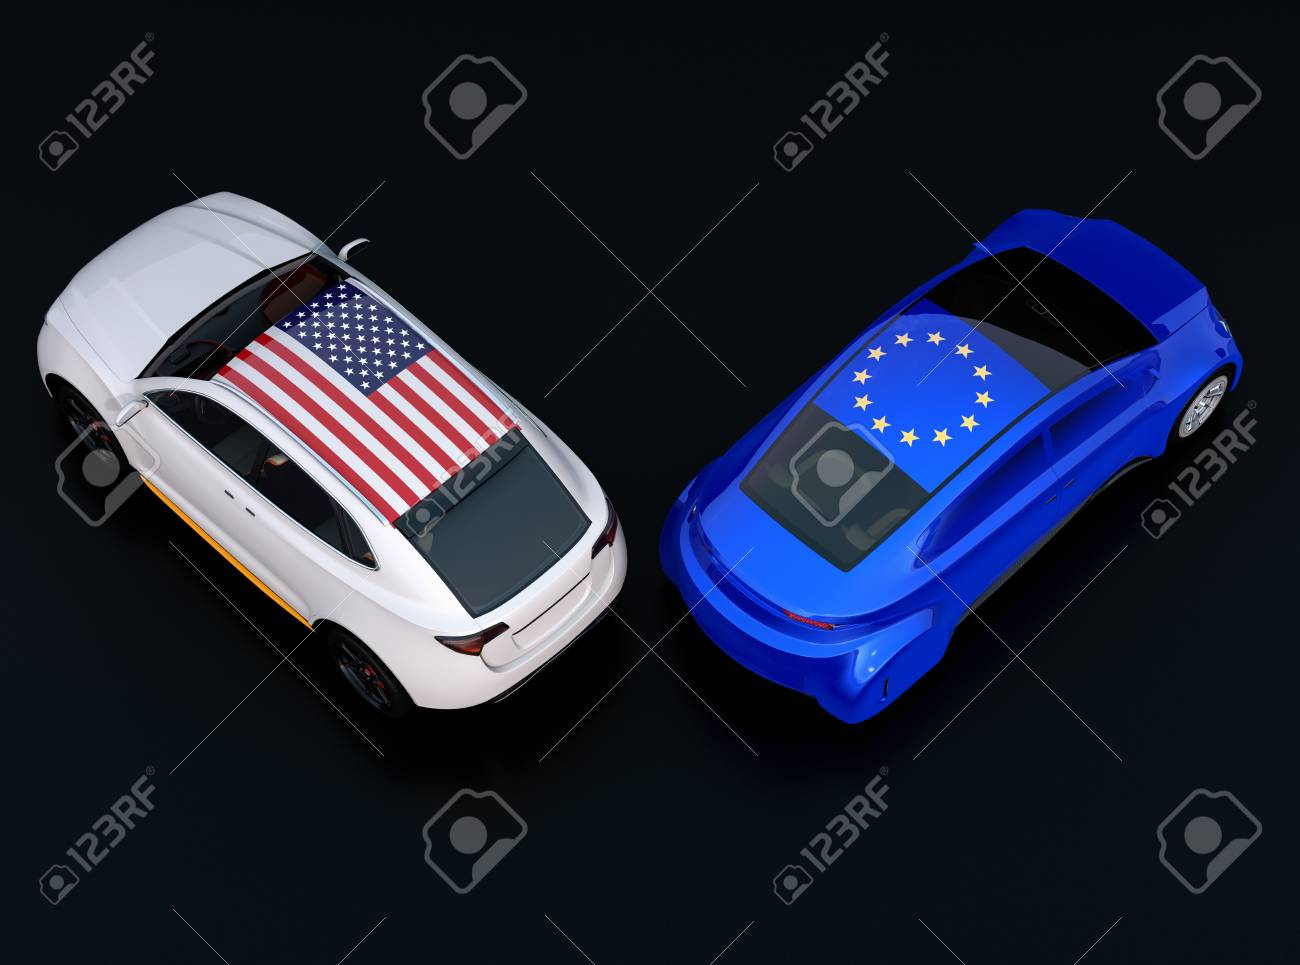 Eu And Us Flags On Two Automobiles Roof Car Top Black Background Stock Photo Picture And Royalty Free Image Image 104422228